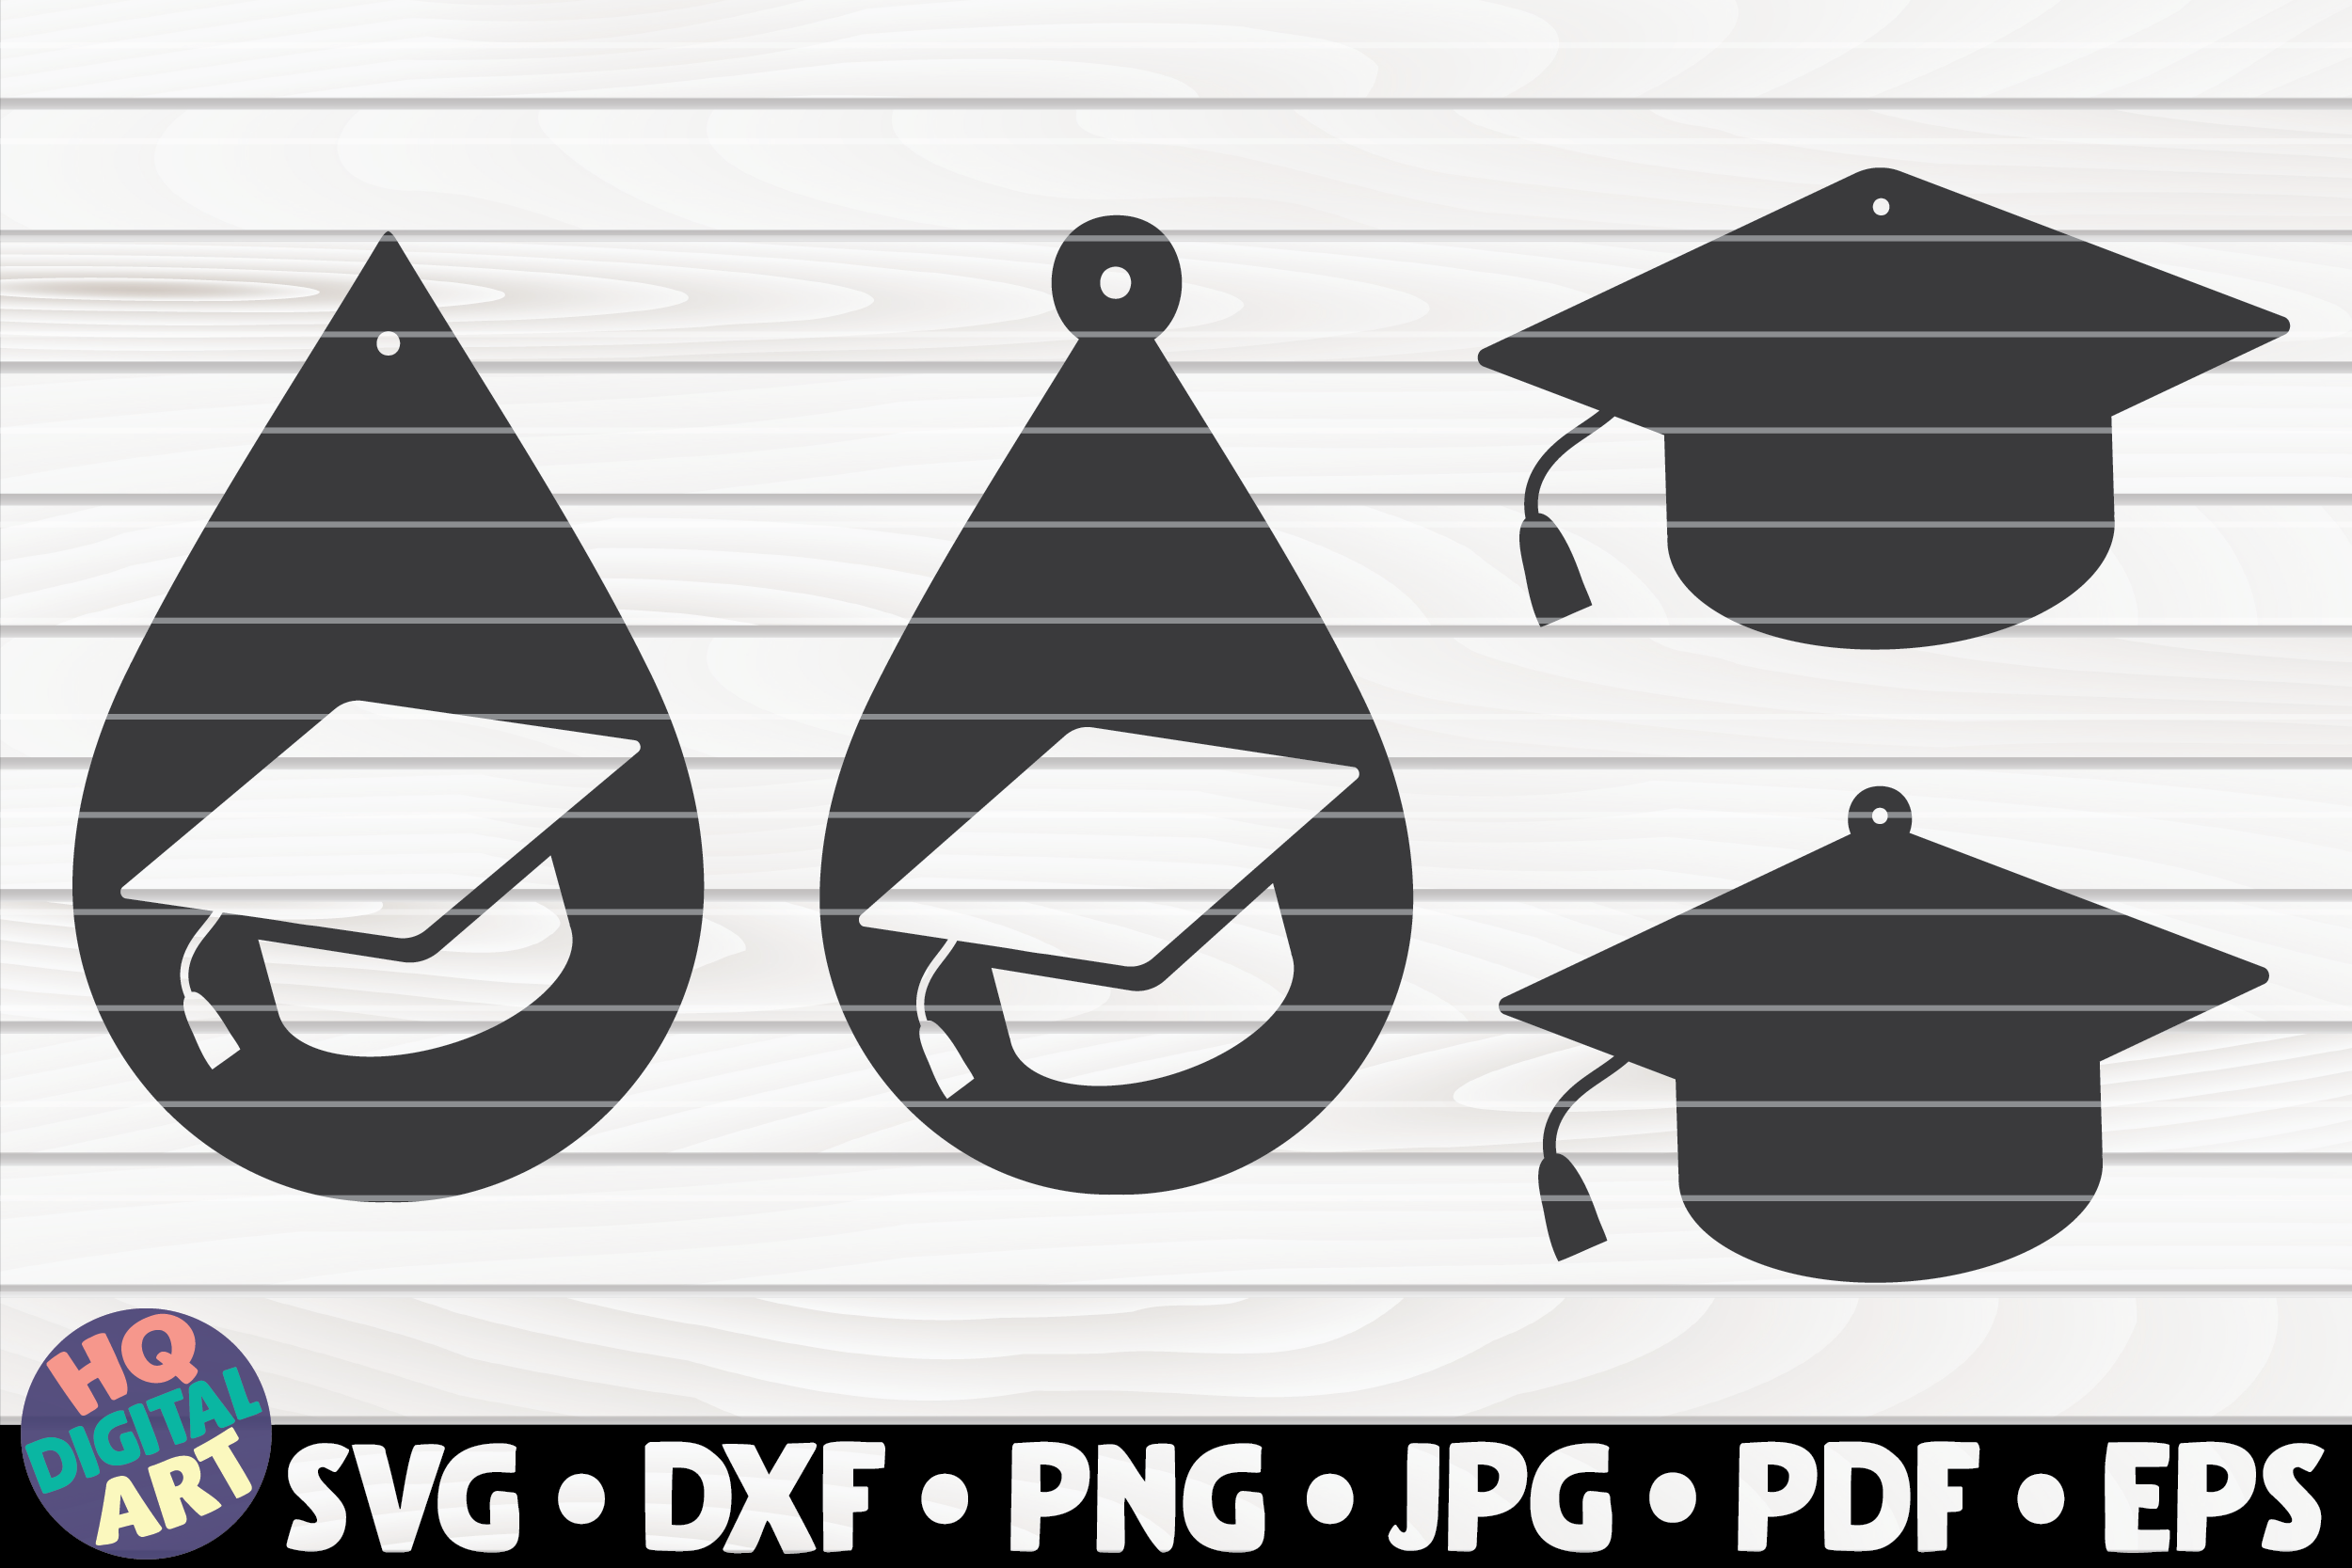 Download Free 4 Graduation Teardrop Earrings Graphic By Mihaibadea95 SVG Cut Files